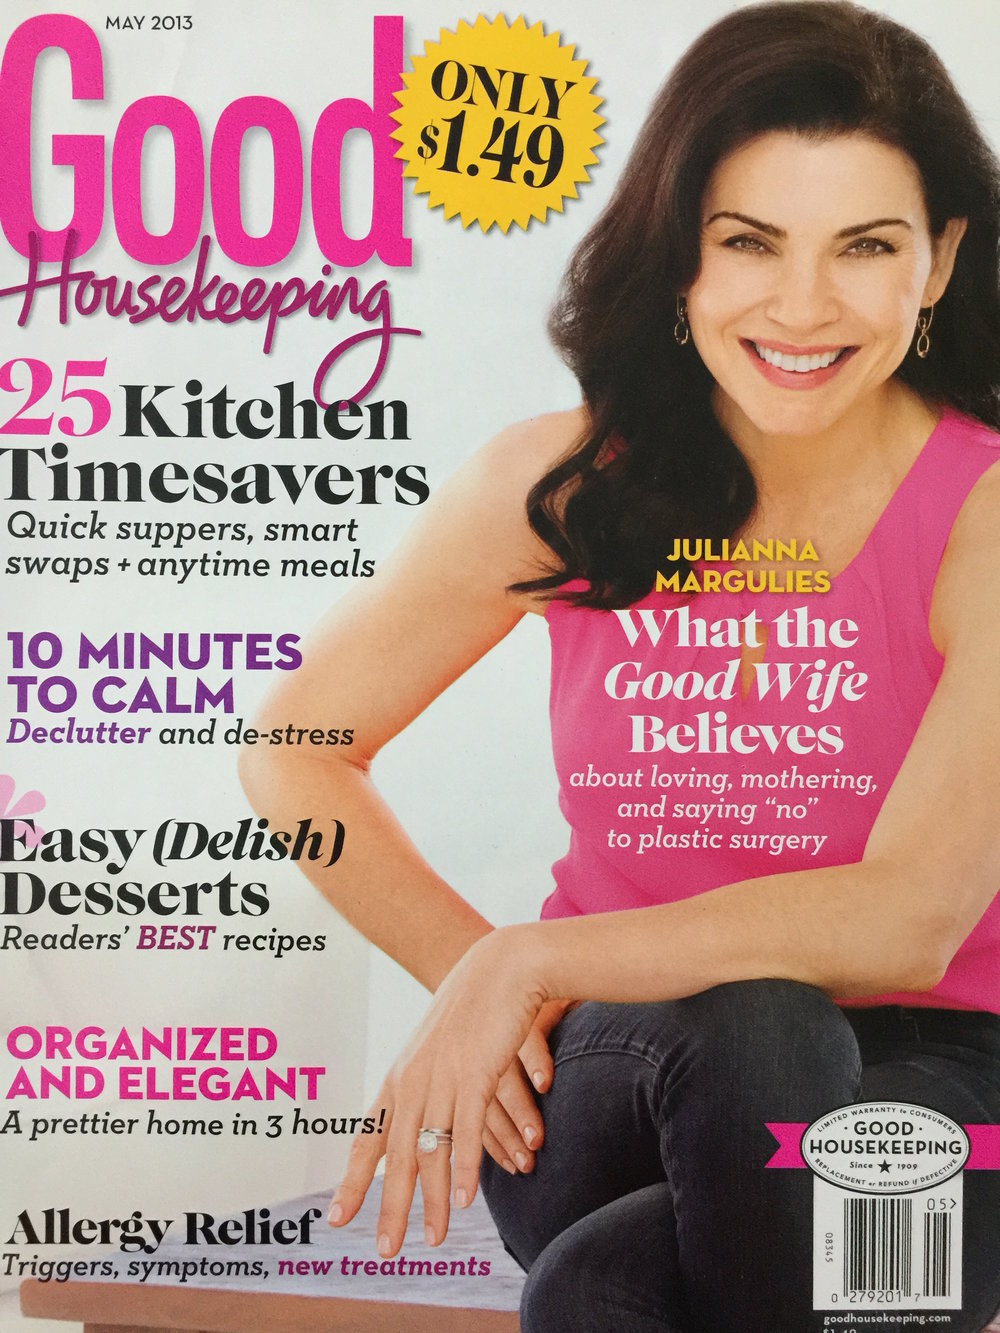 Good Housekeeping Cover.JPG